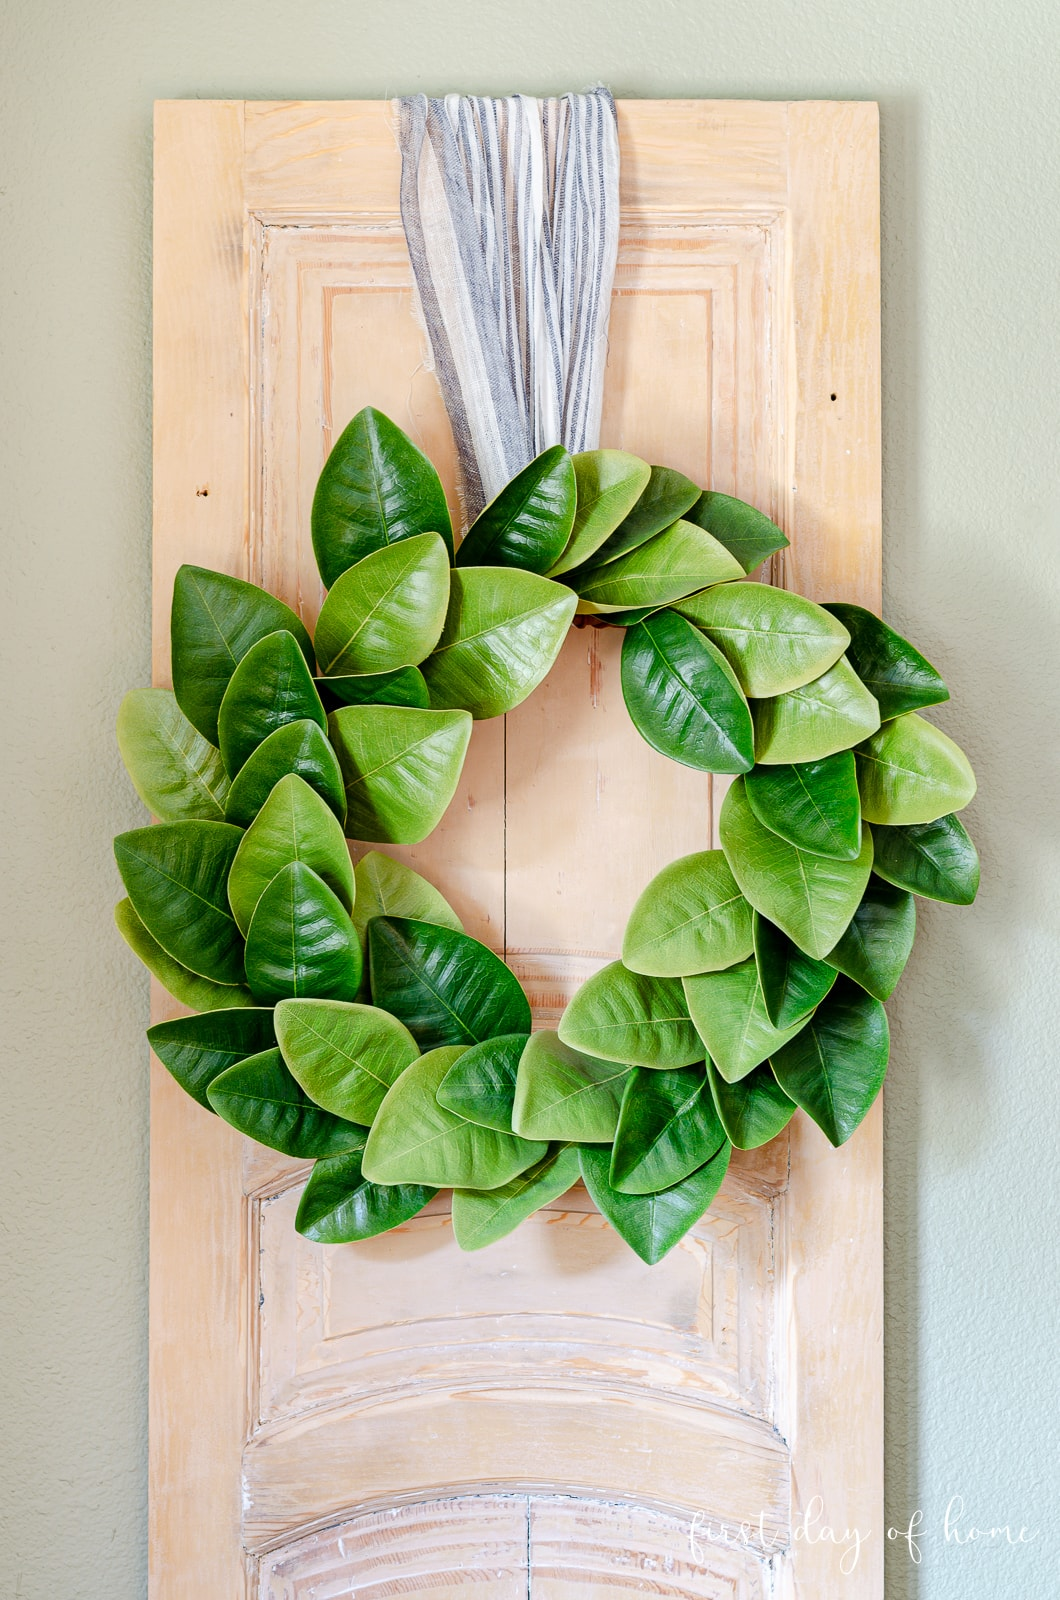 Fall home tour of breakfast room with magnolia wreath on reclaimed wooden door